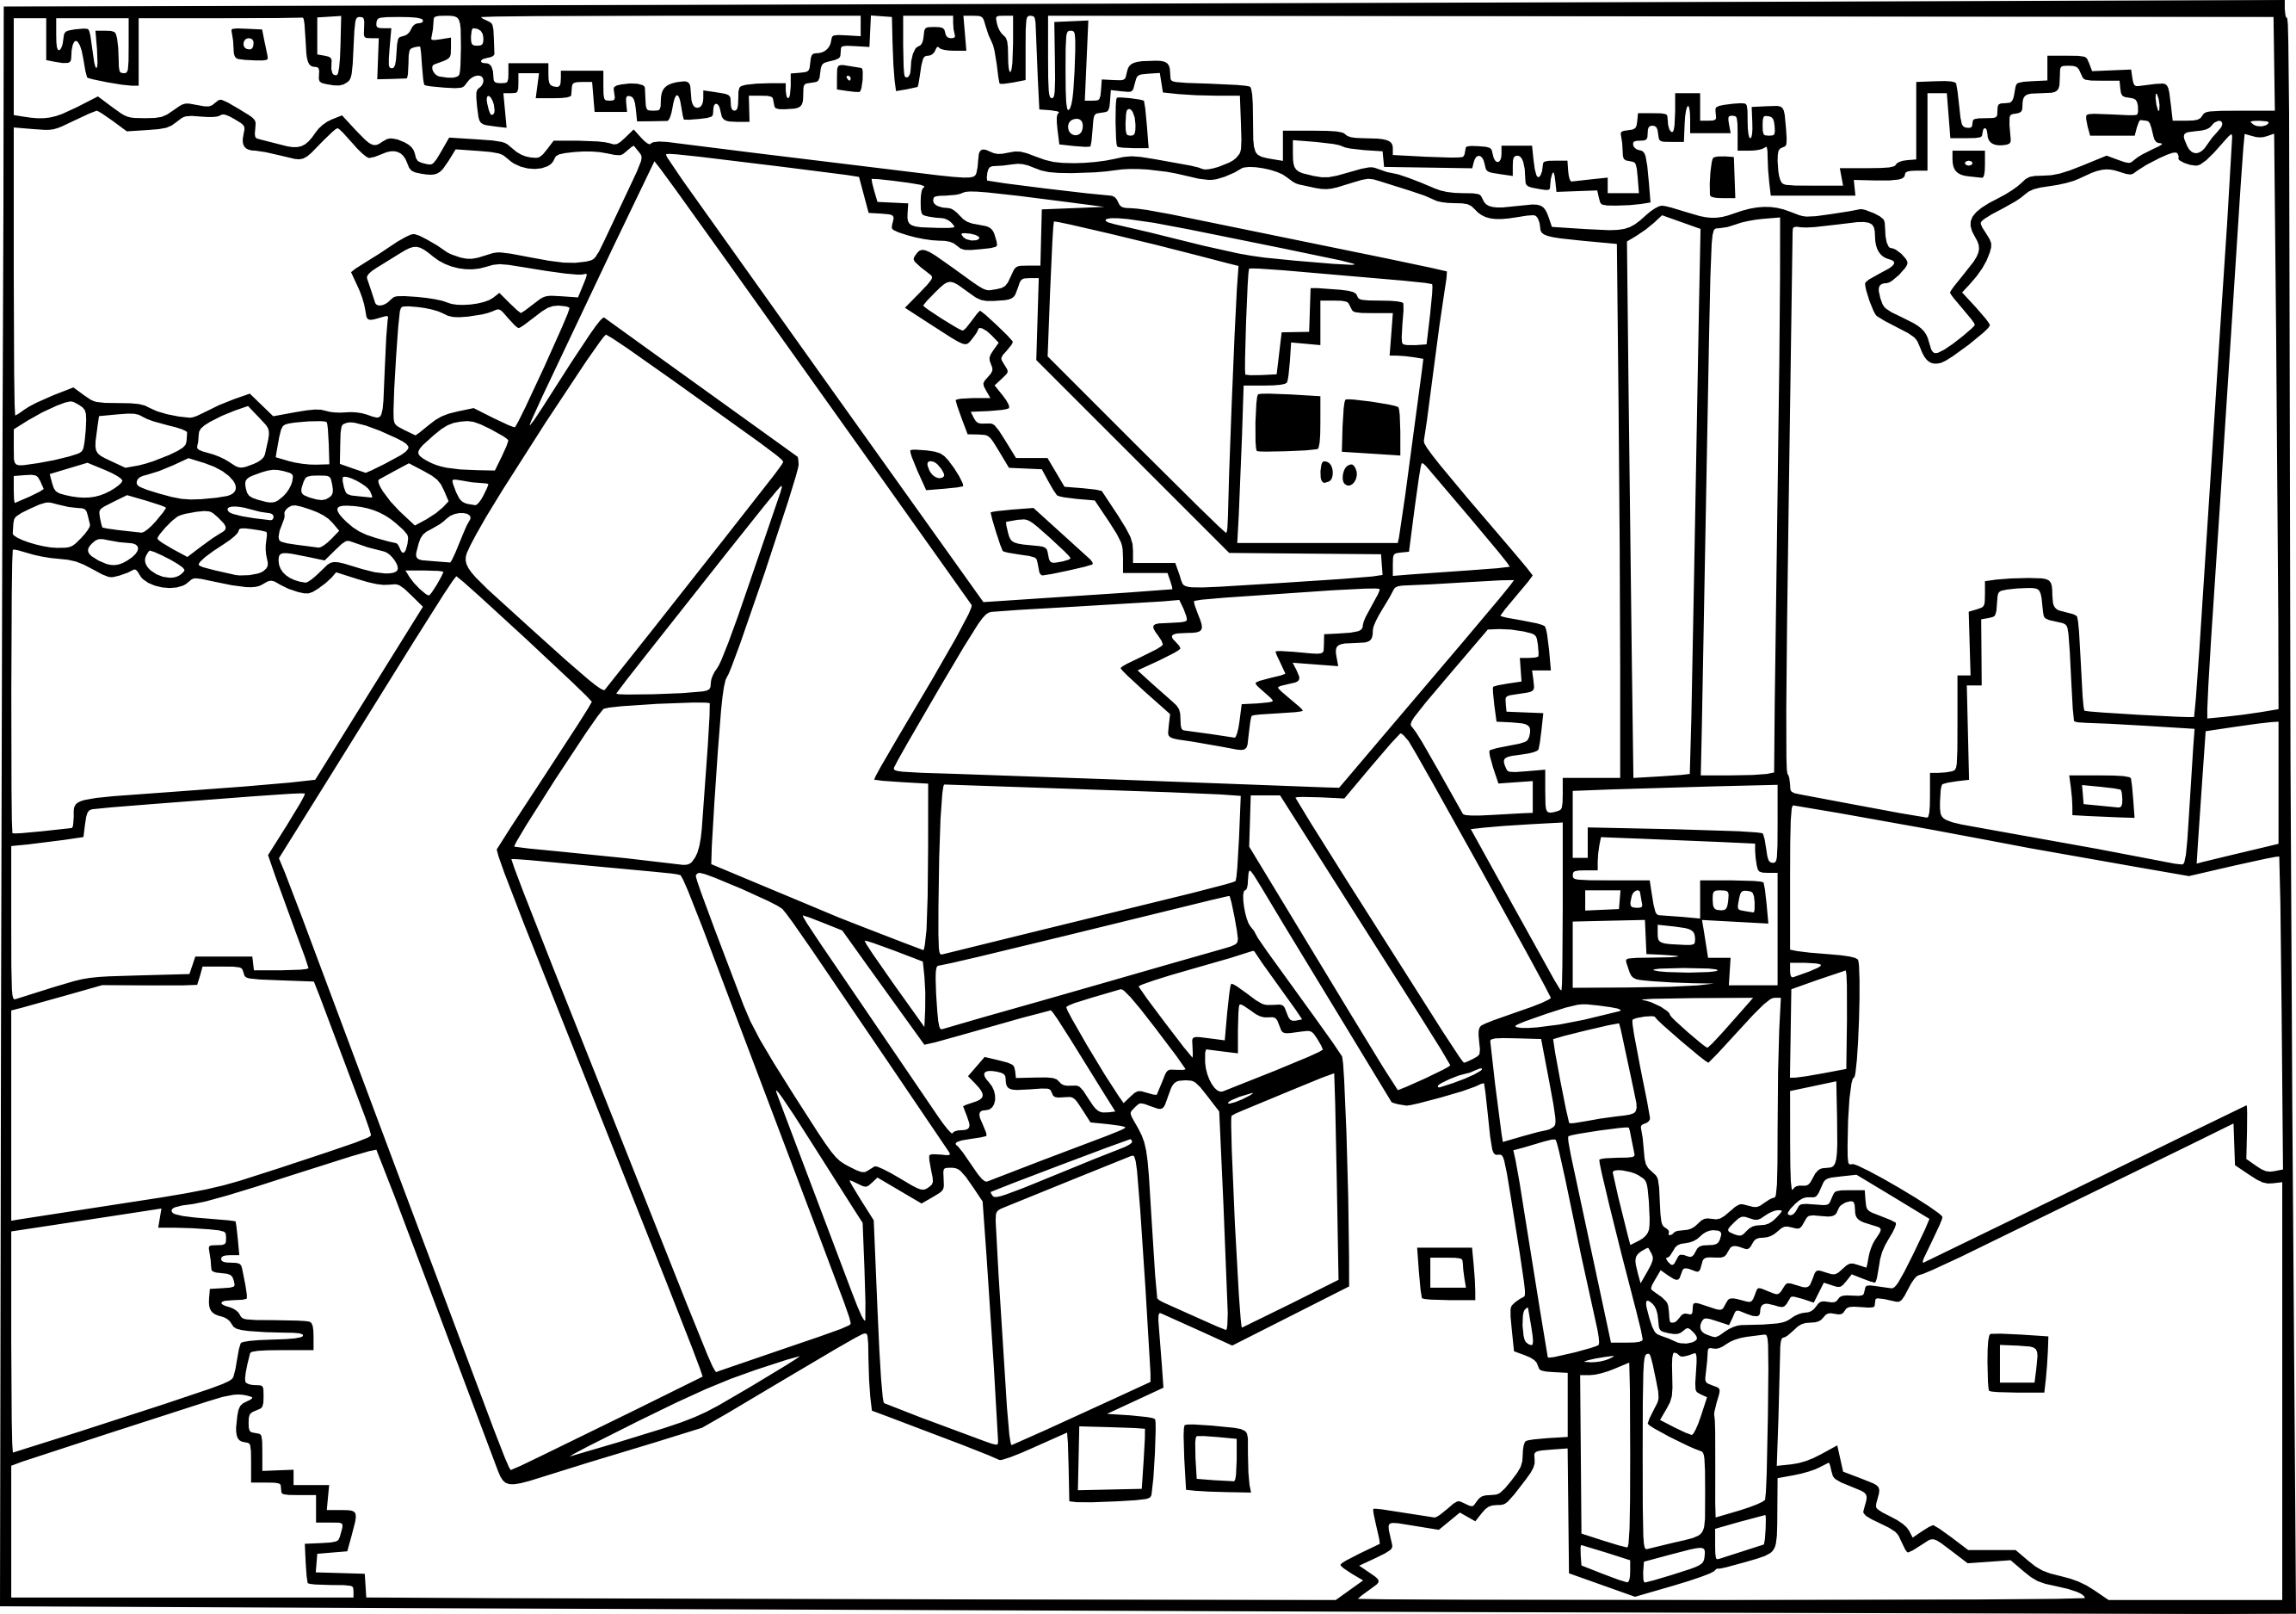 2668x1875 Trend Minecraft Mutant Zombie Coloring Pages Mermaid Preschool